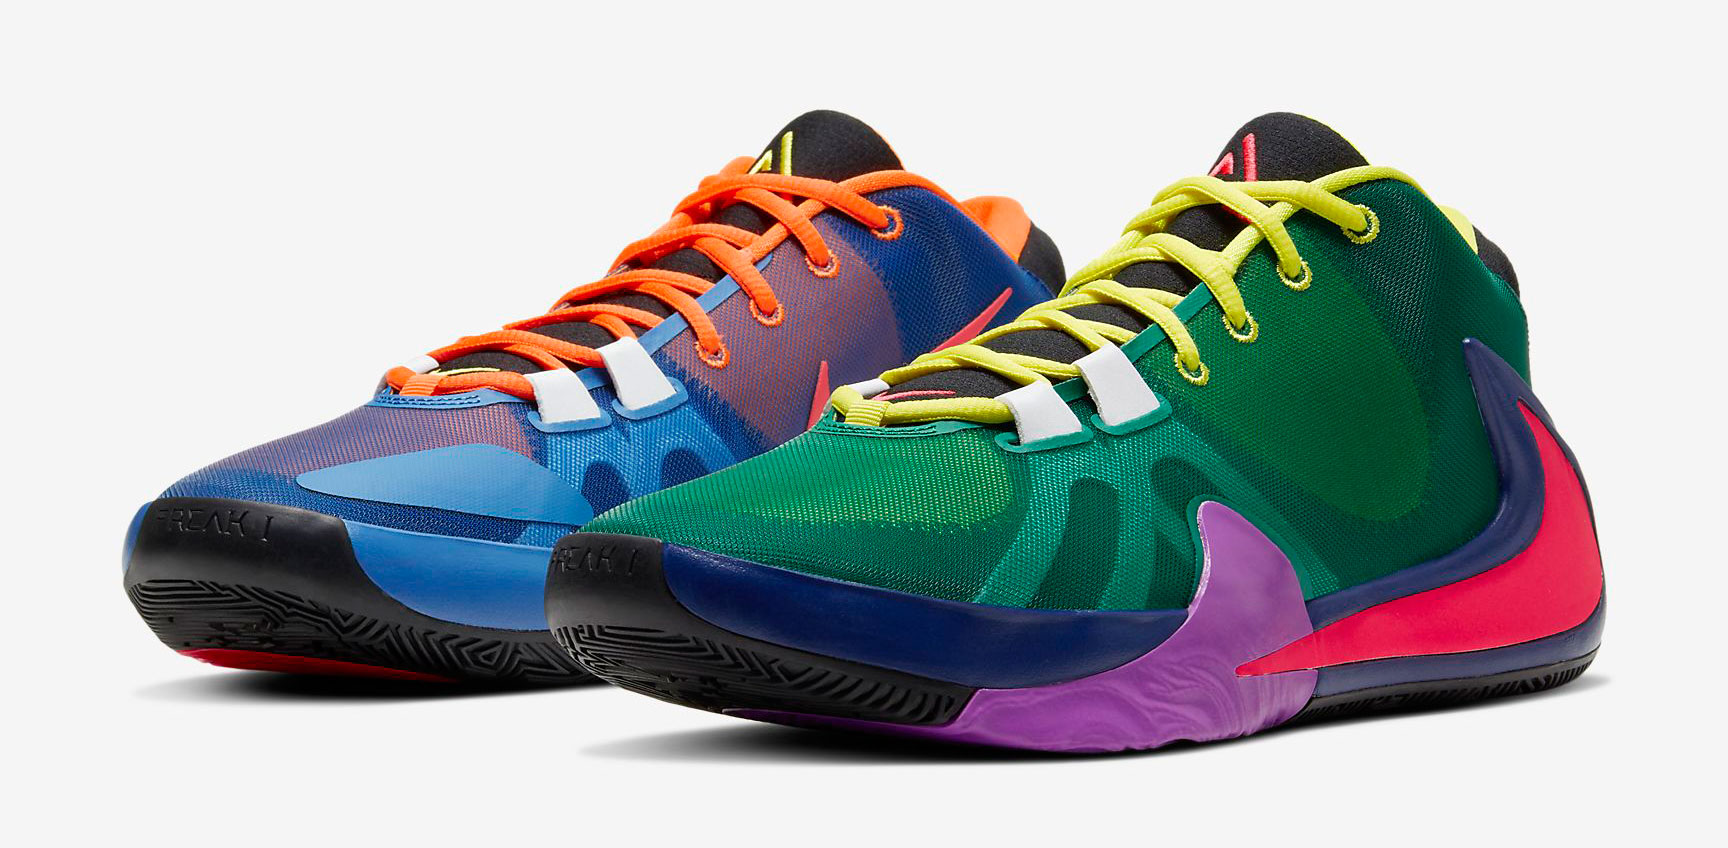 nike-zoom-freak-1-multi-color-roots-release-date-1